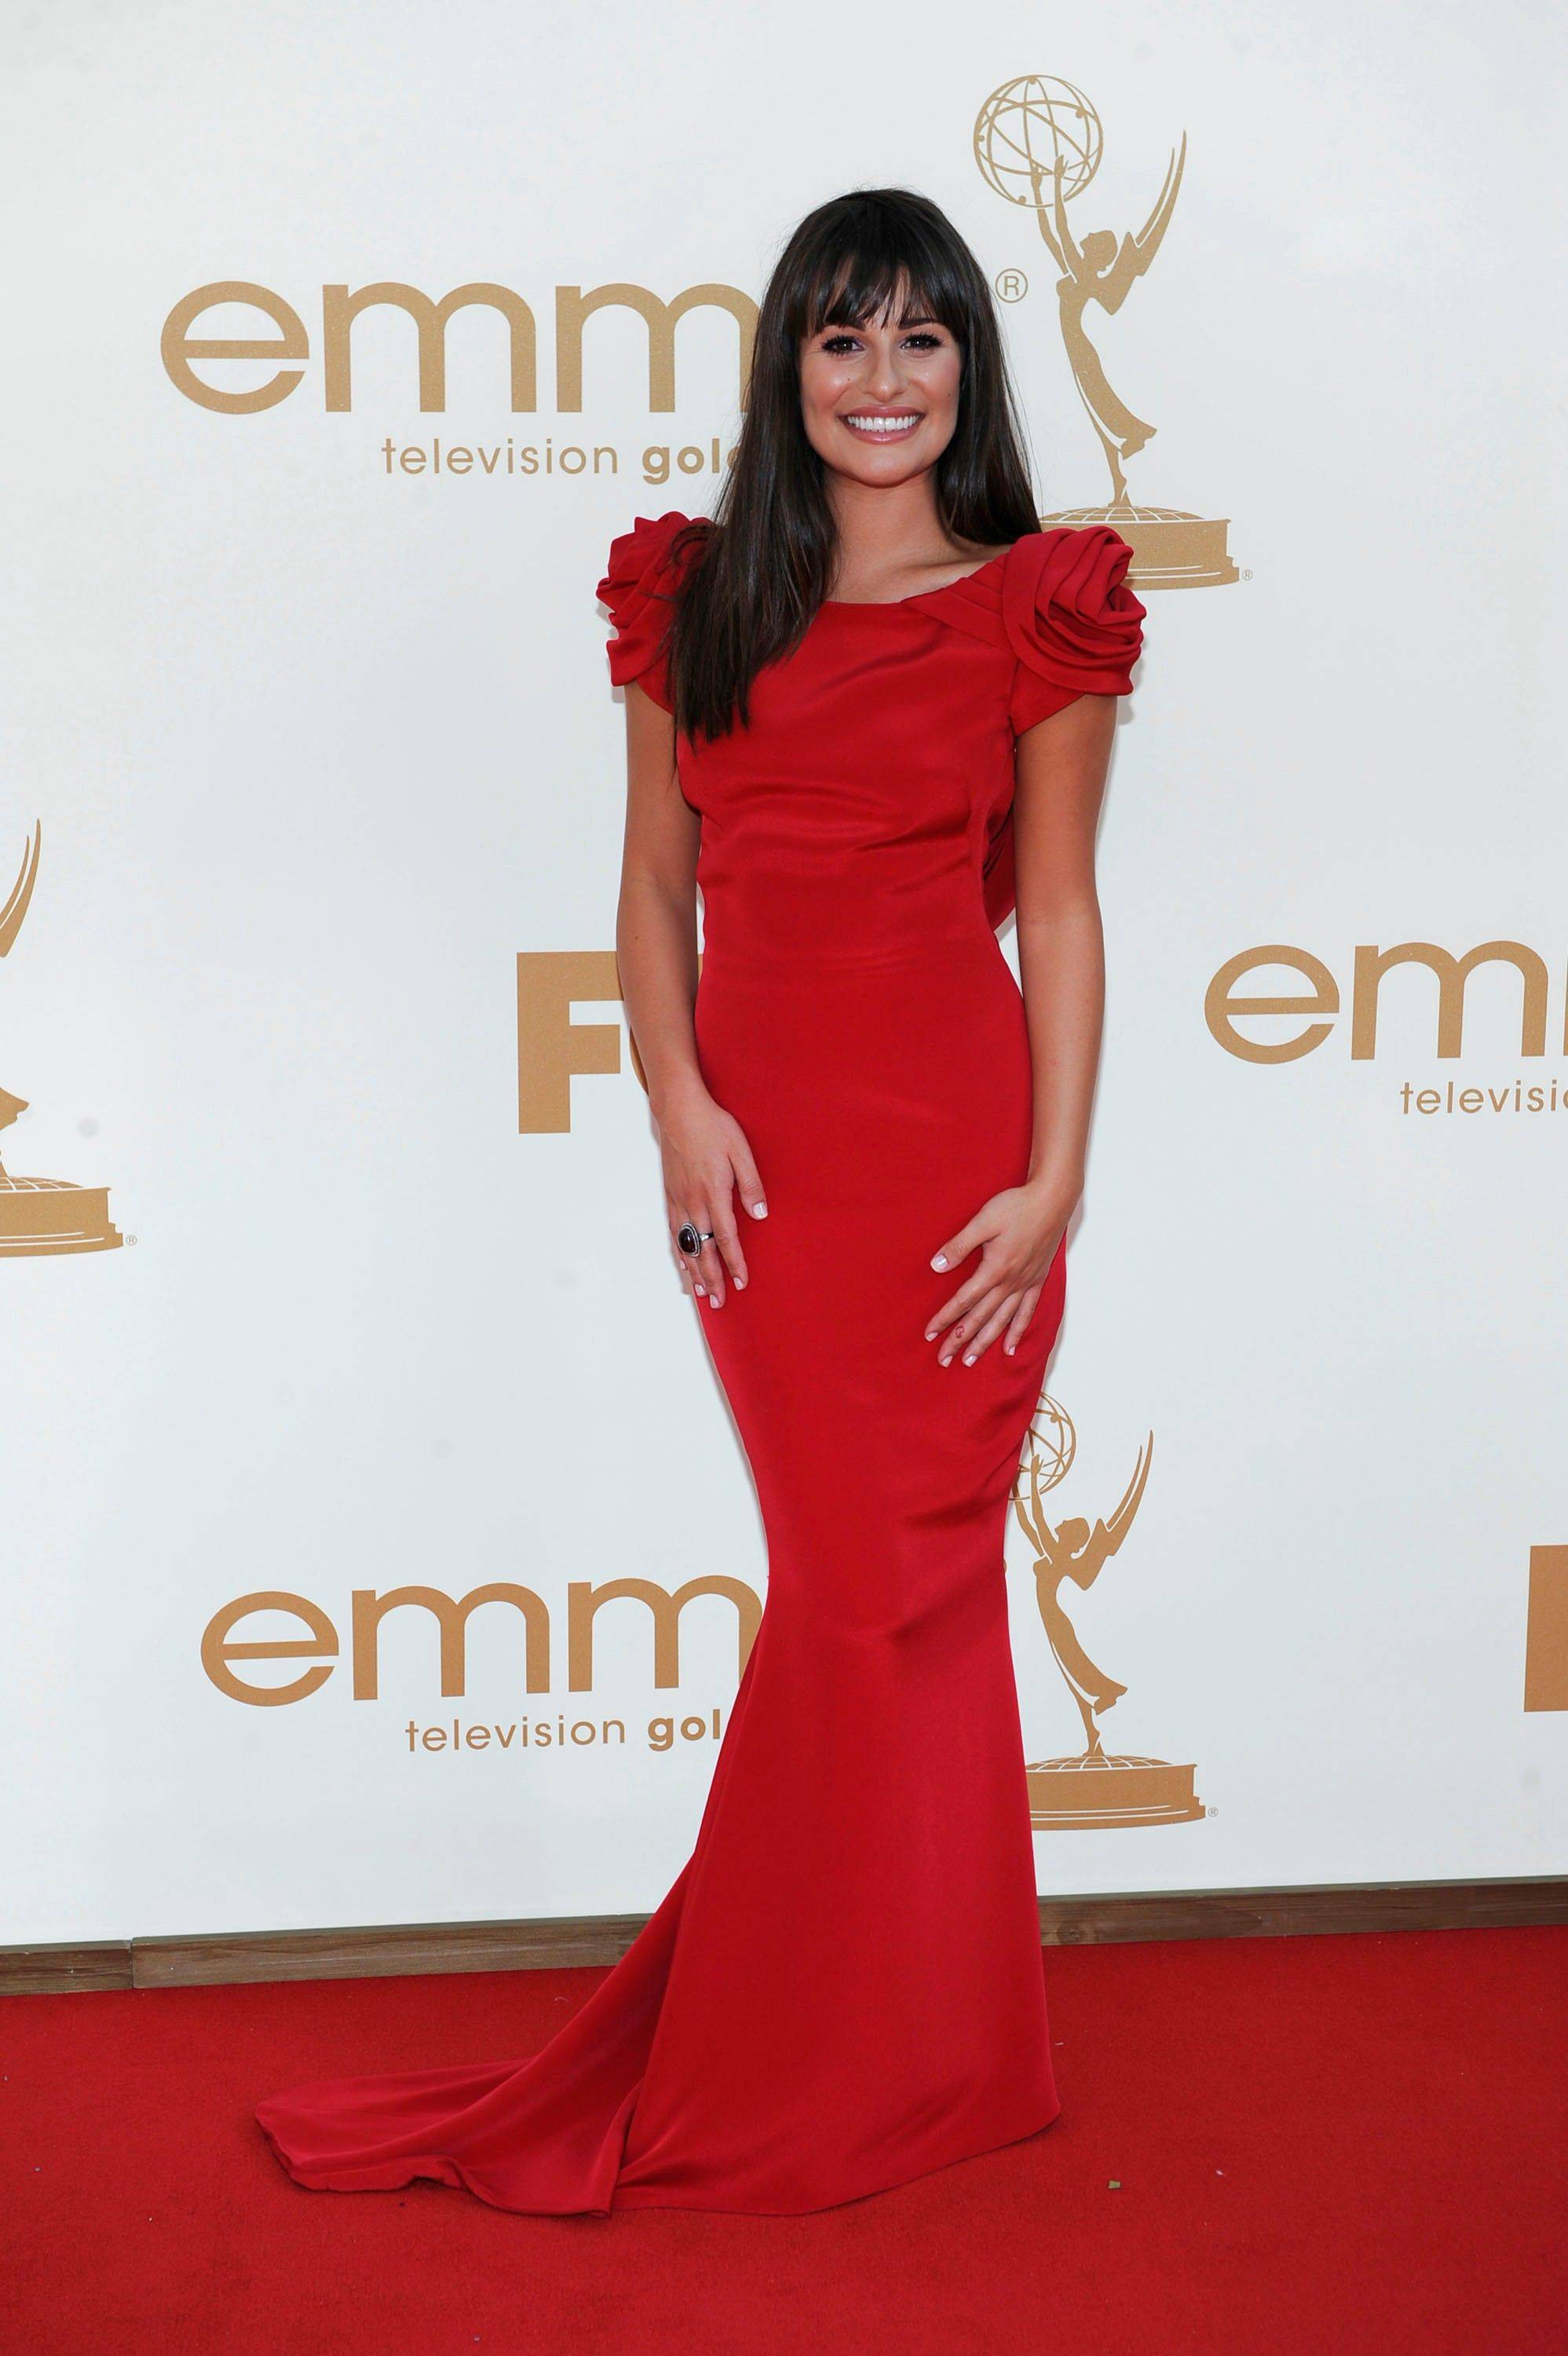 """Glee"" star Lea Michele made quite a stir in her Marchesa gown as she walked the red carpet at the 63rd Primetime Emmy Awards on Sunday in Los Angeles."